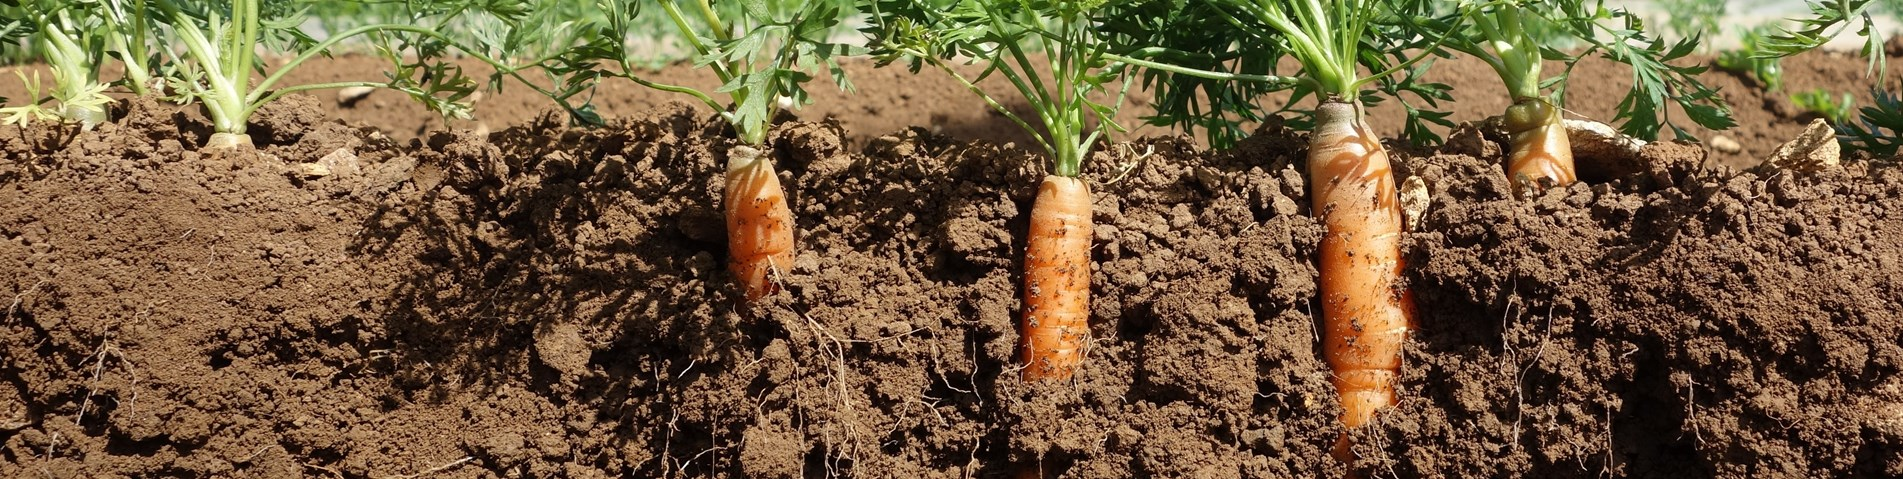 Carrots growing in soil.JPG (1)